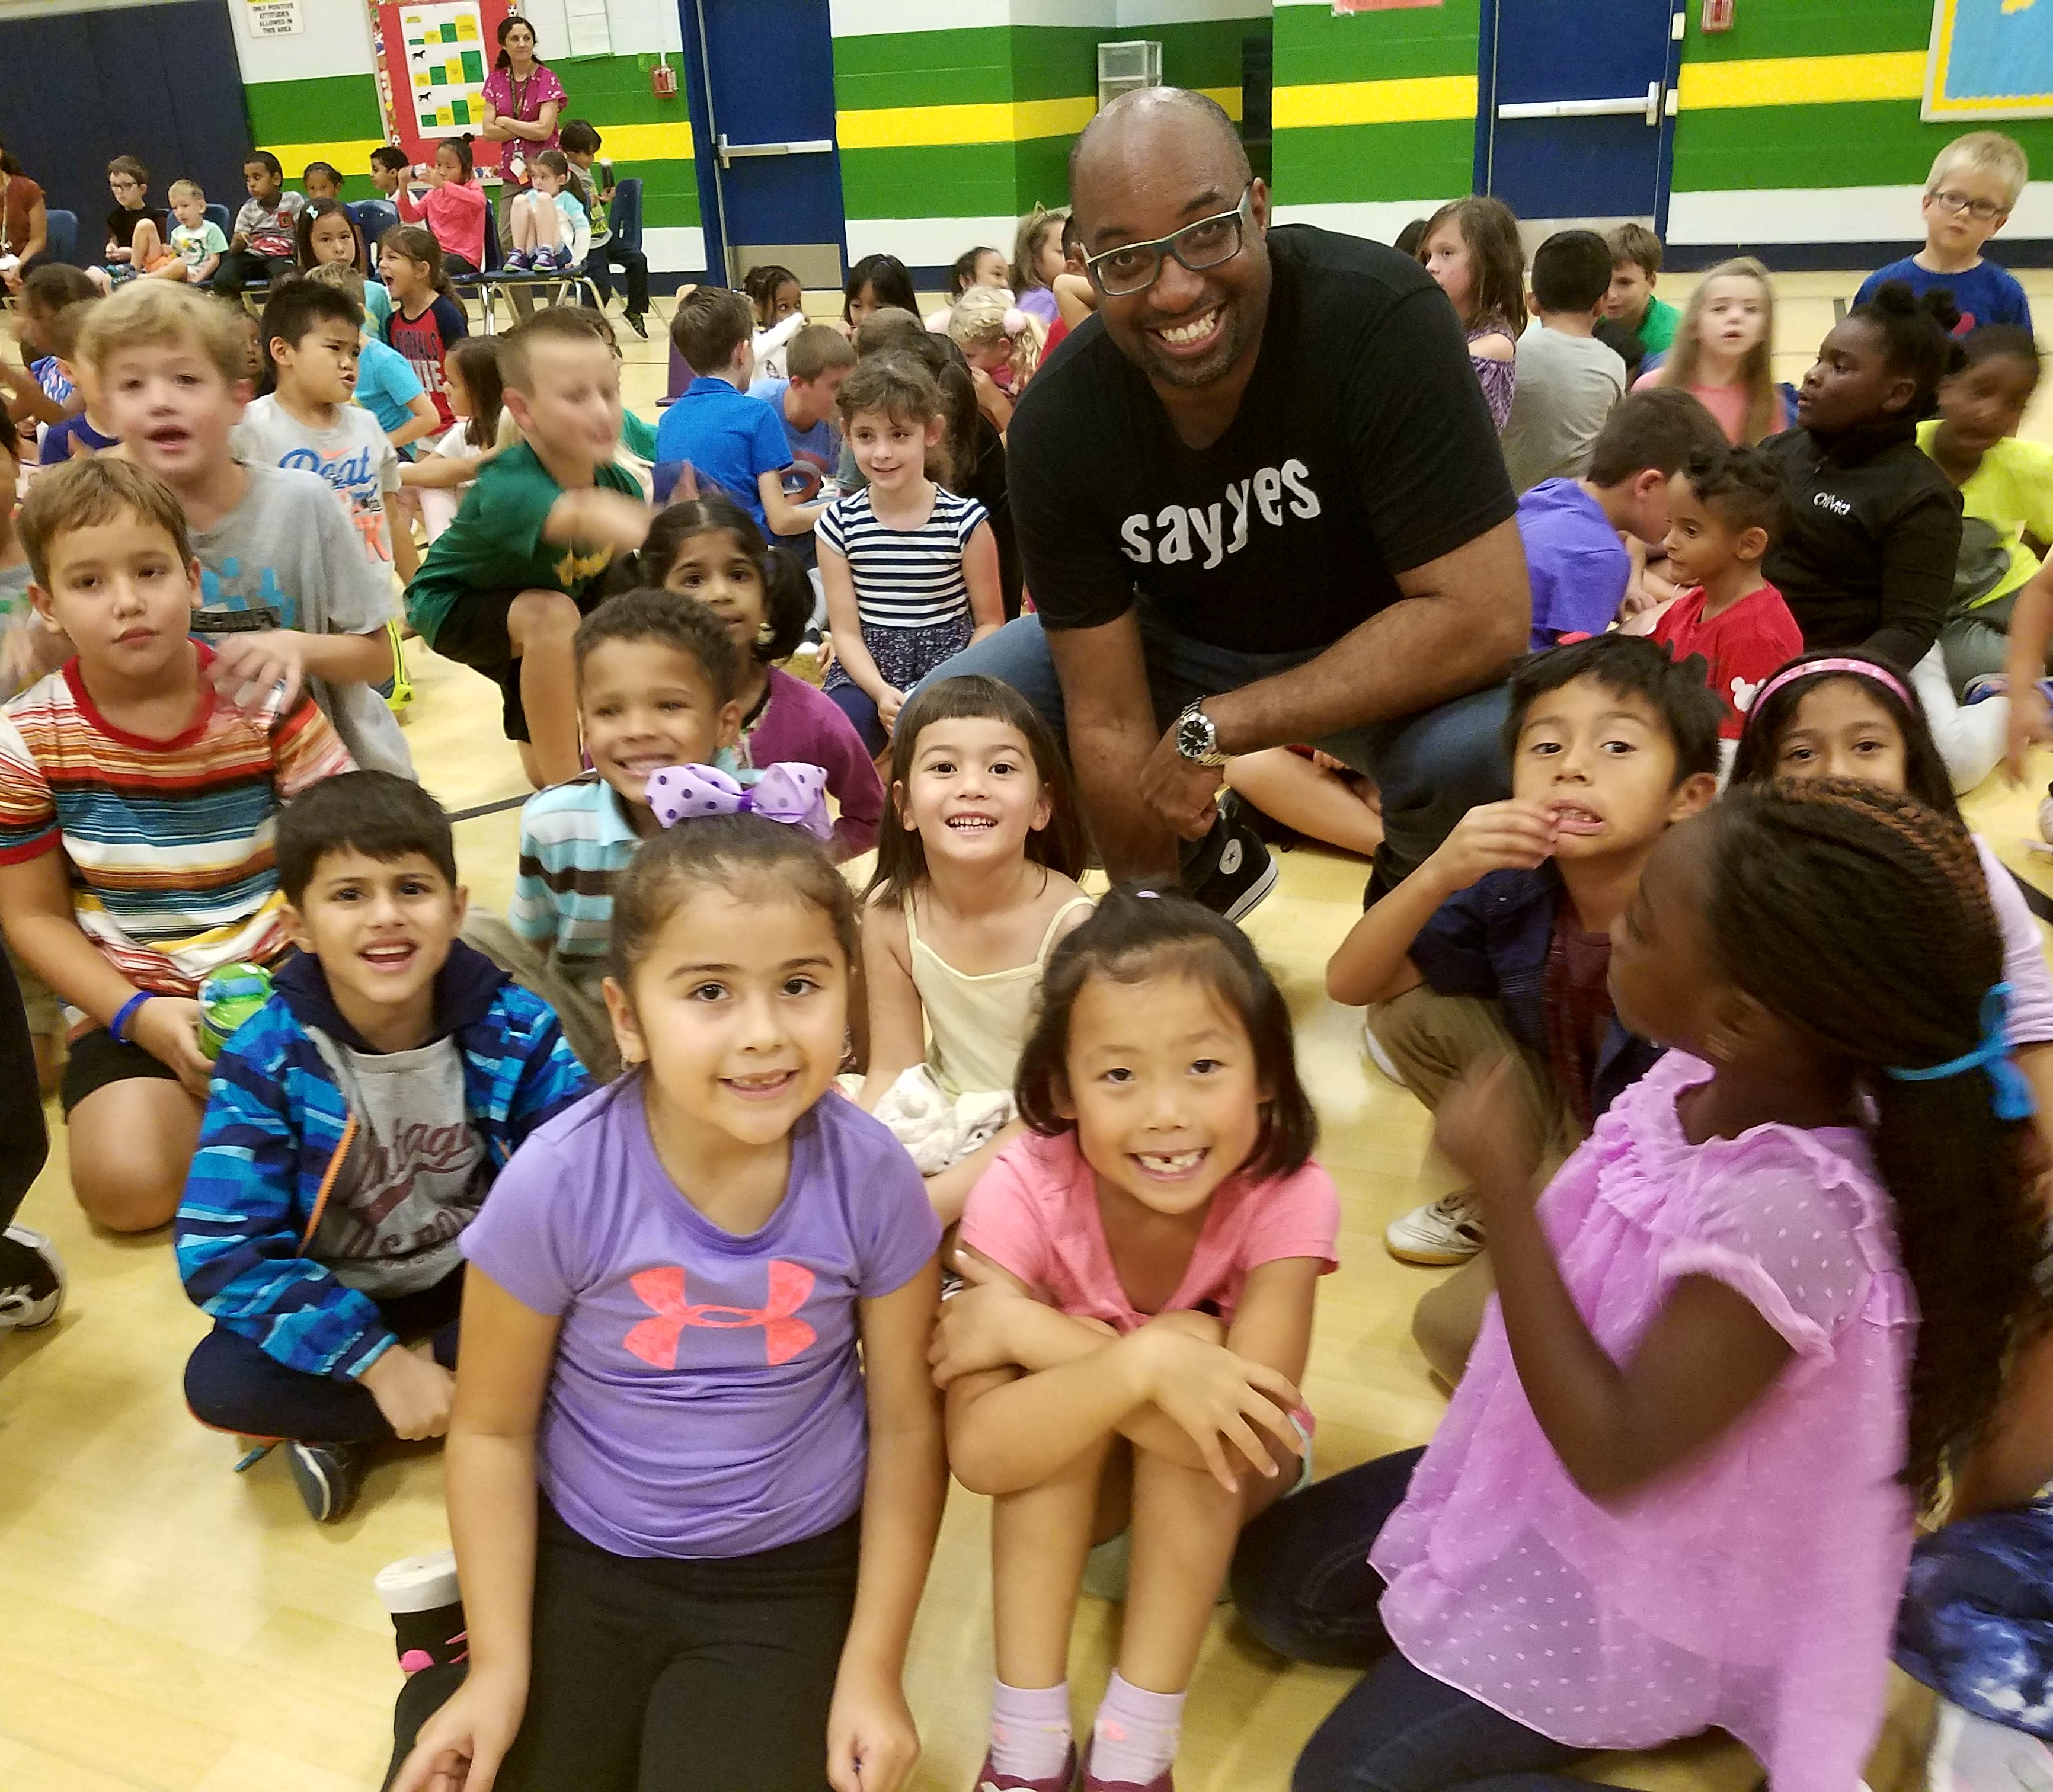 Students around Kwame Alexander, author